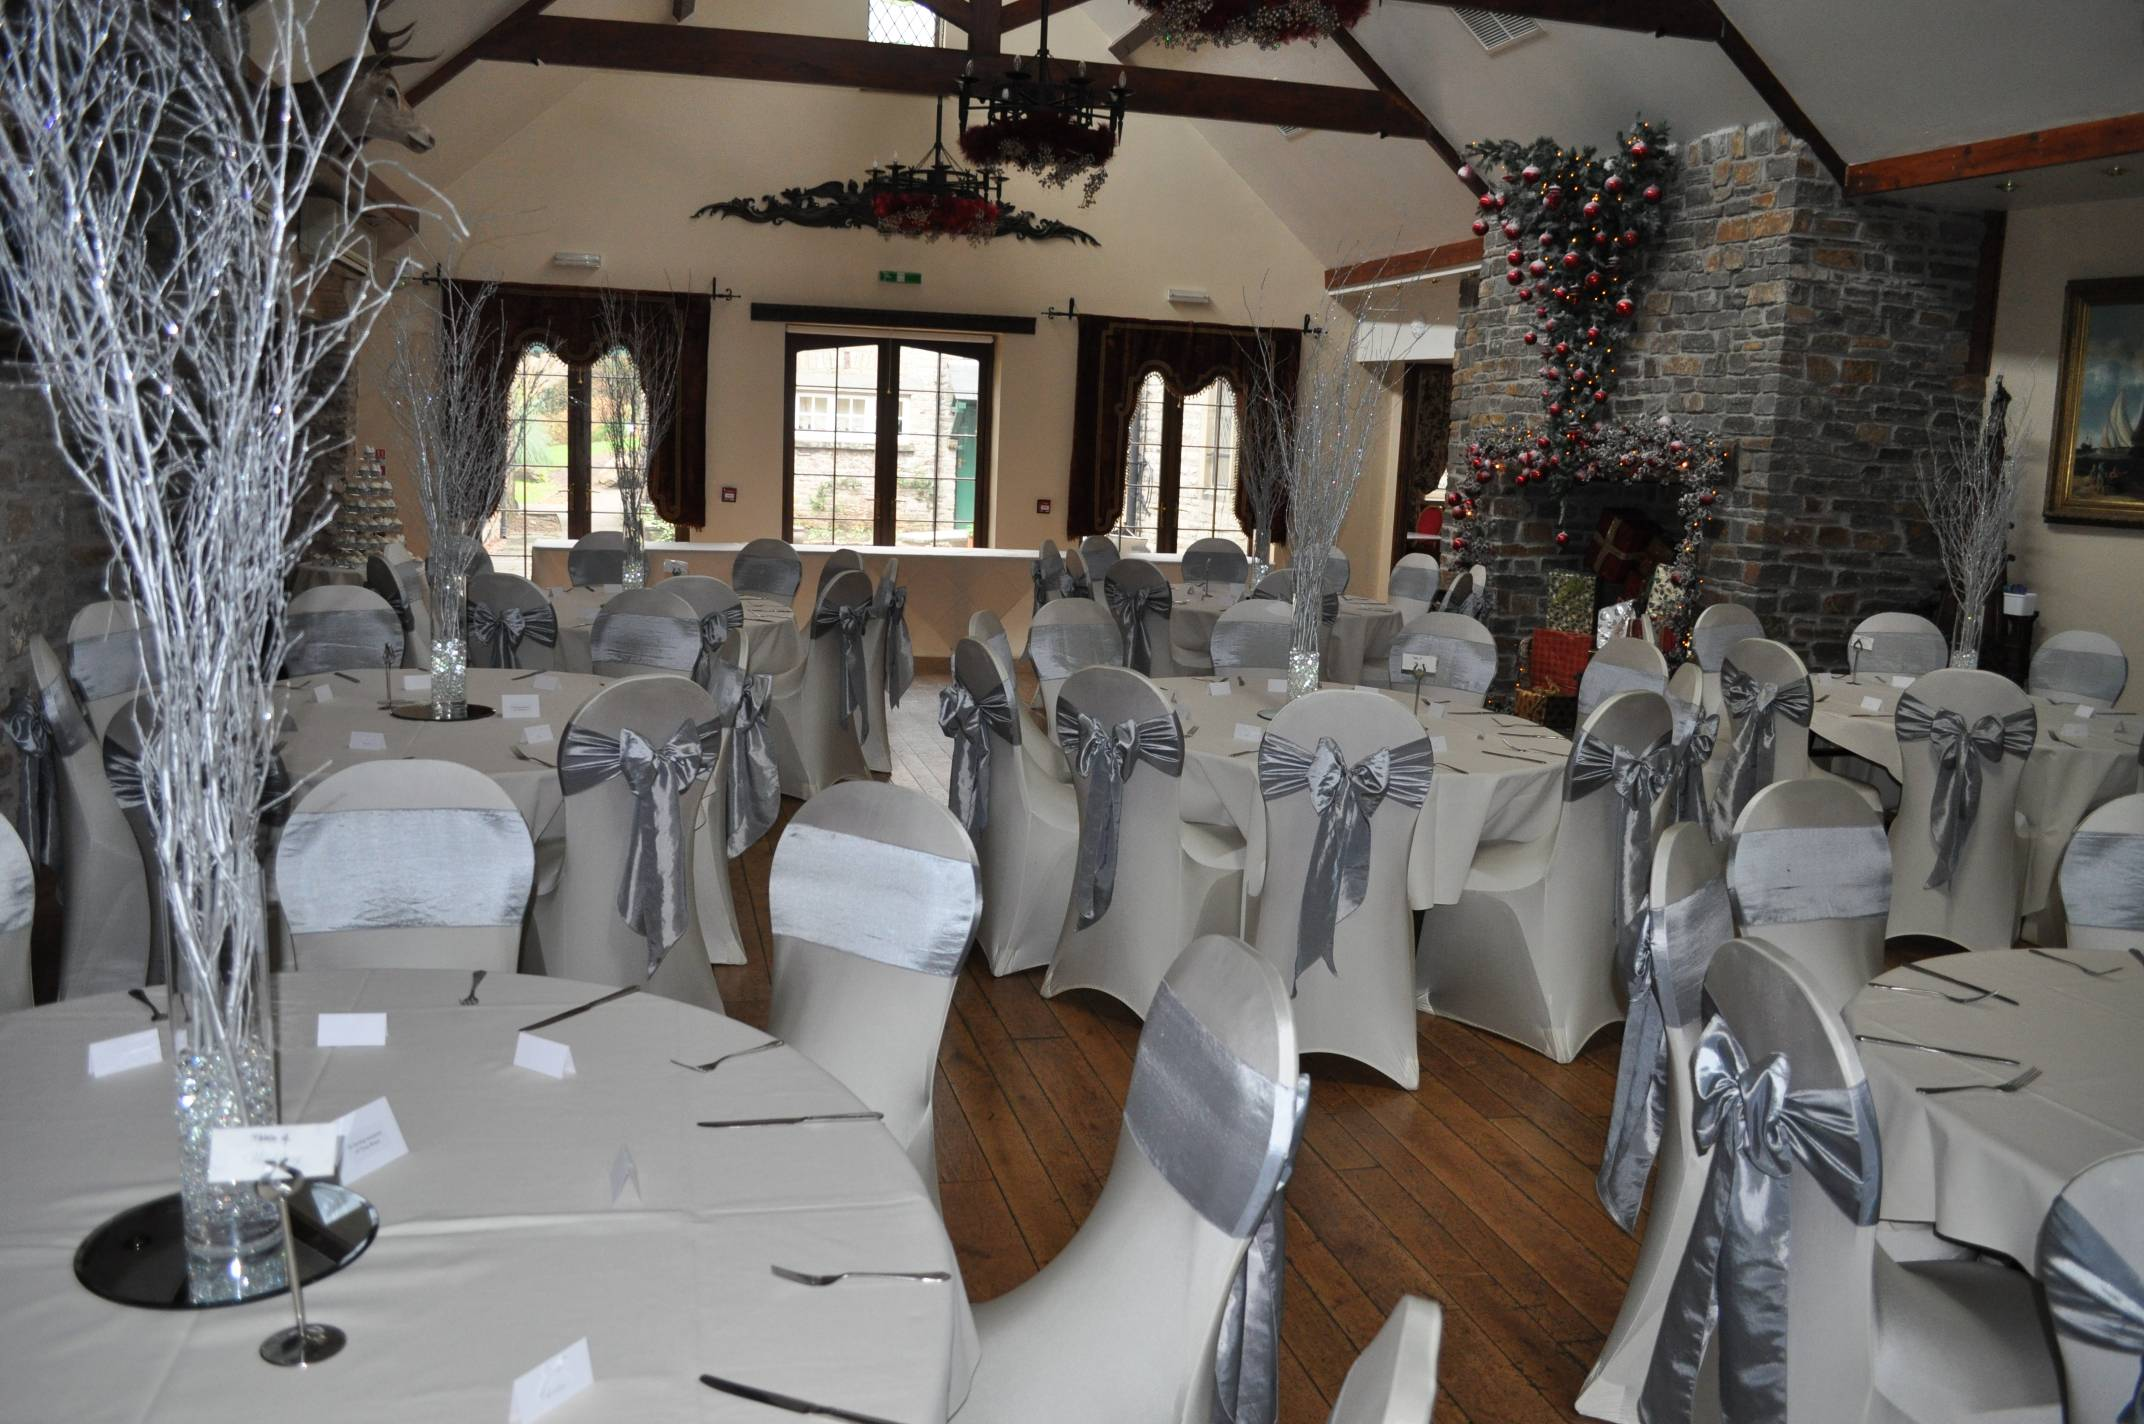 wedding chair covers cardiff bath for disabled centrepieces martini vases candelabras fairy